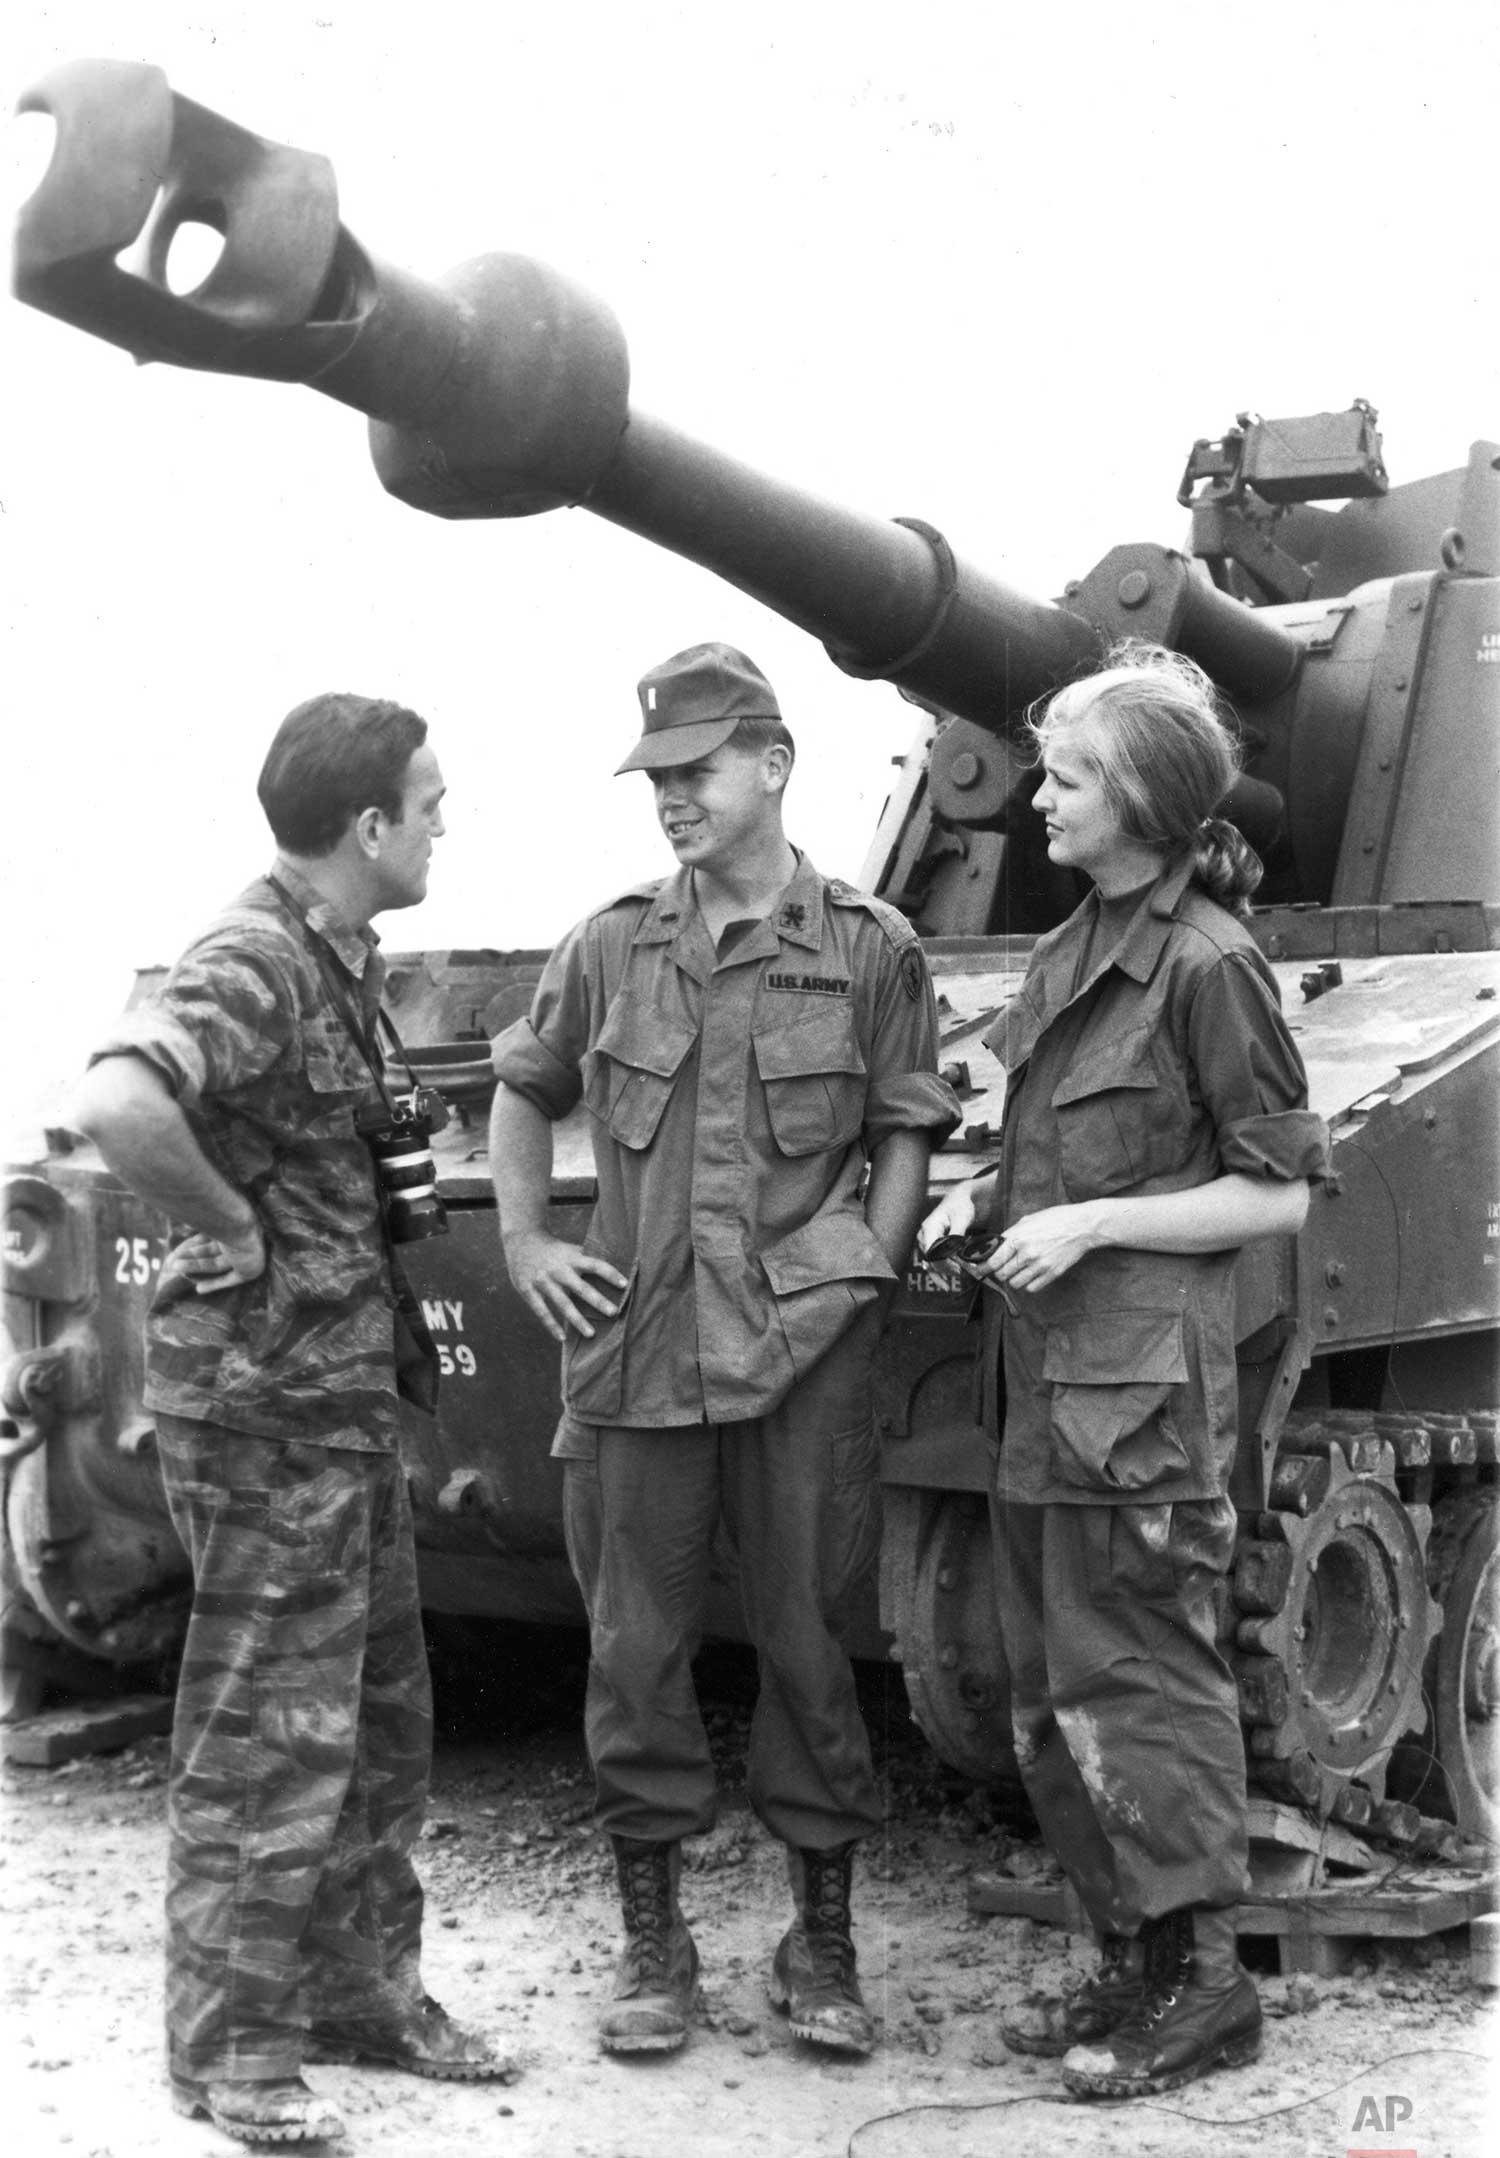 AP newsmen Peter Arnett, left, and Mary Ann (Kelly) Smith discuss armored operations with a tankman beneath the muzzle of a heavy tank of the 25th Infantry Division at Cu Chi, Vietnam (Sept. 1967). (AP Photo)